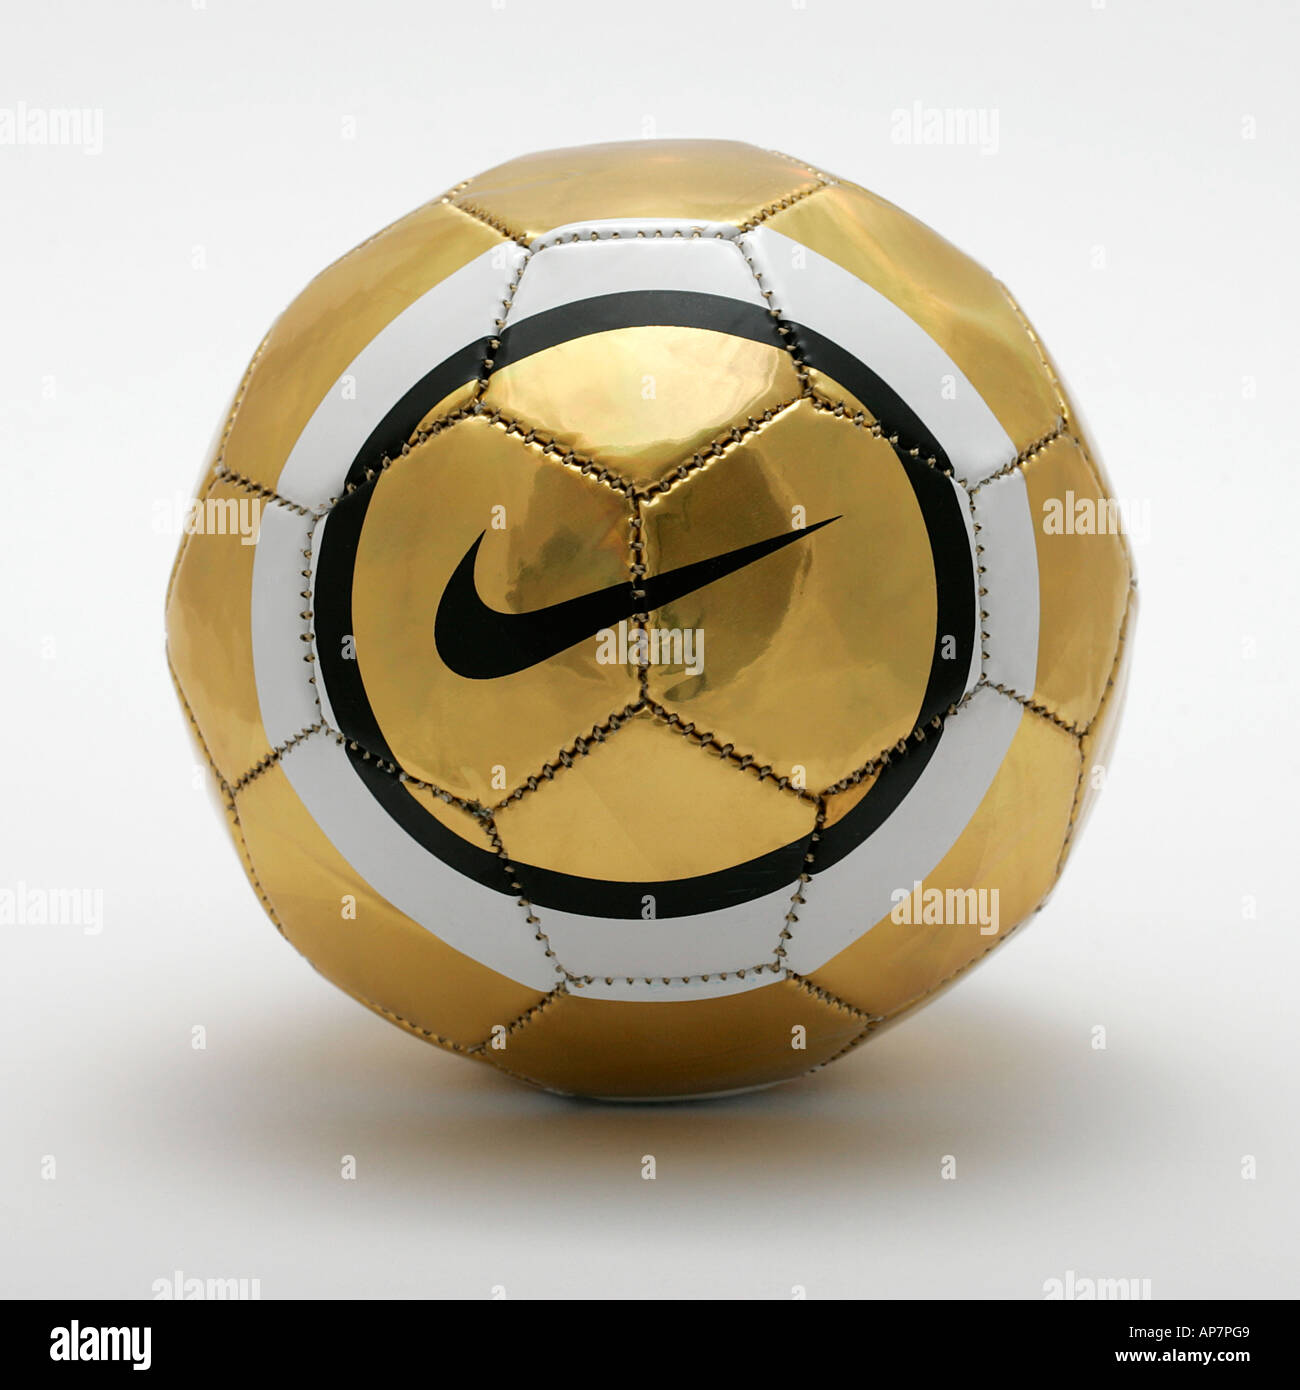 Nike Gold Fuss Ball Fussball Fussball Club Teamsport Kreis